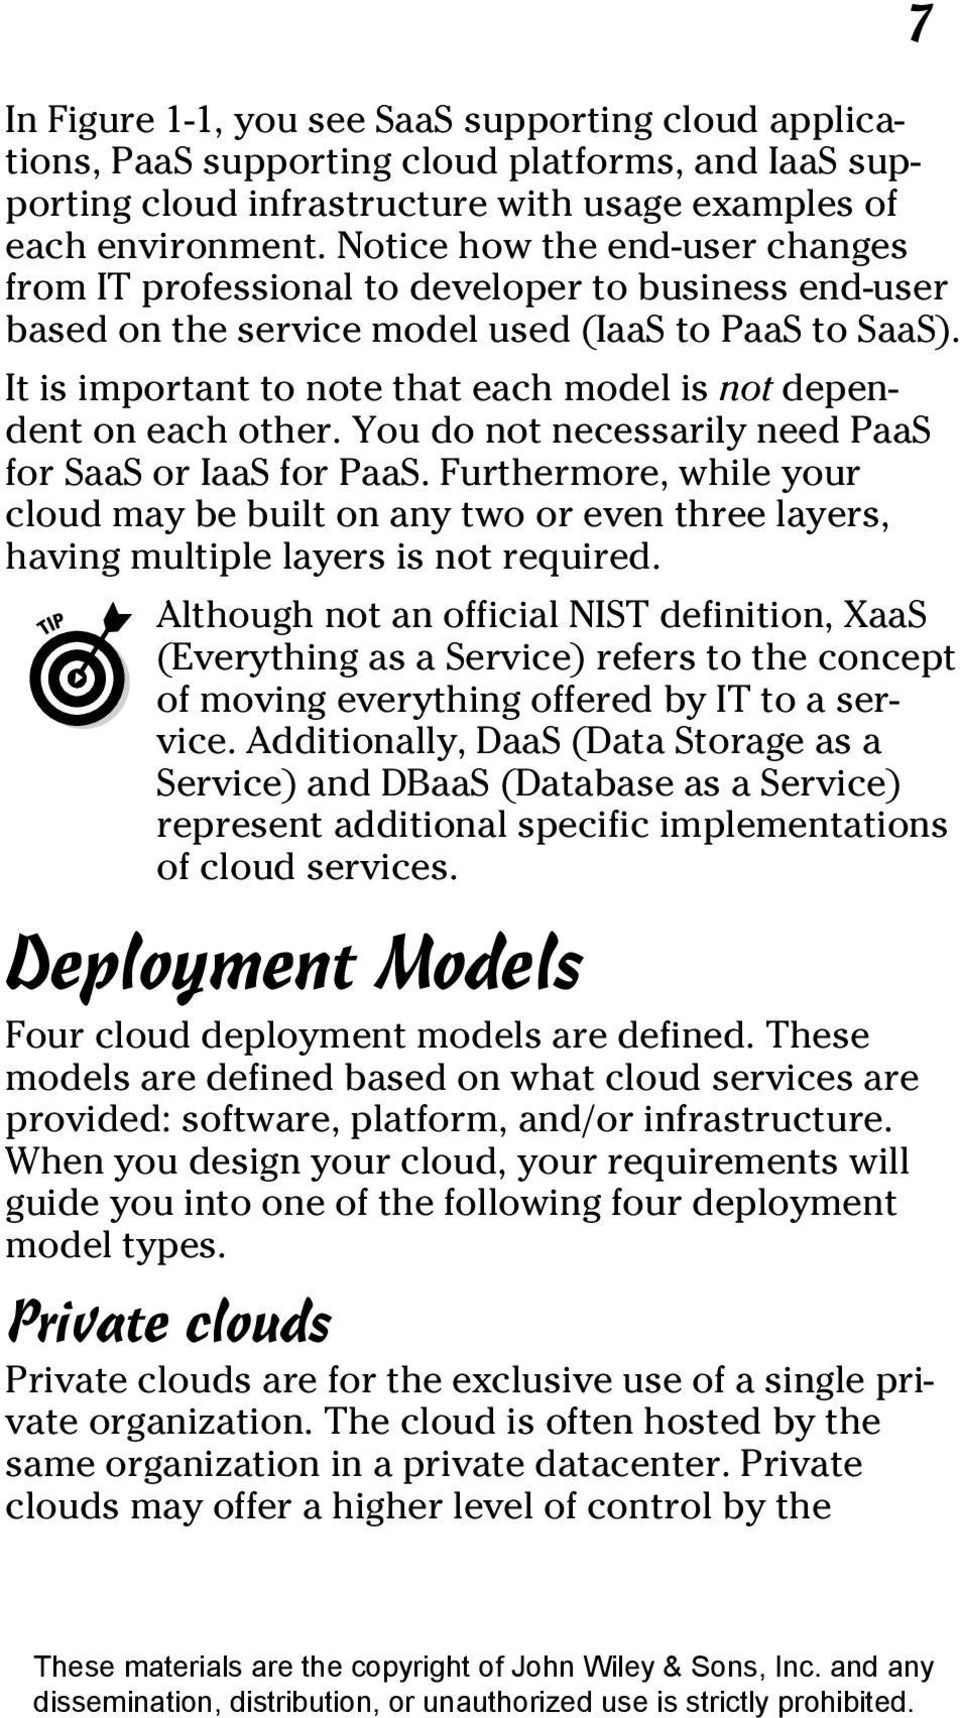 It is important to note that each model is not dependent on each other. You do not necessarily need PaaS for SaaS or IaaS for PaaS.